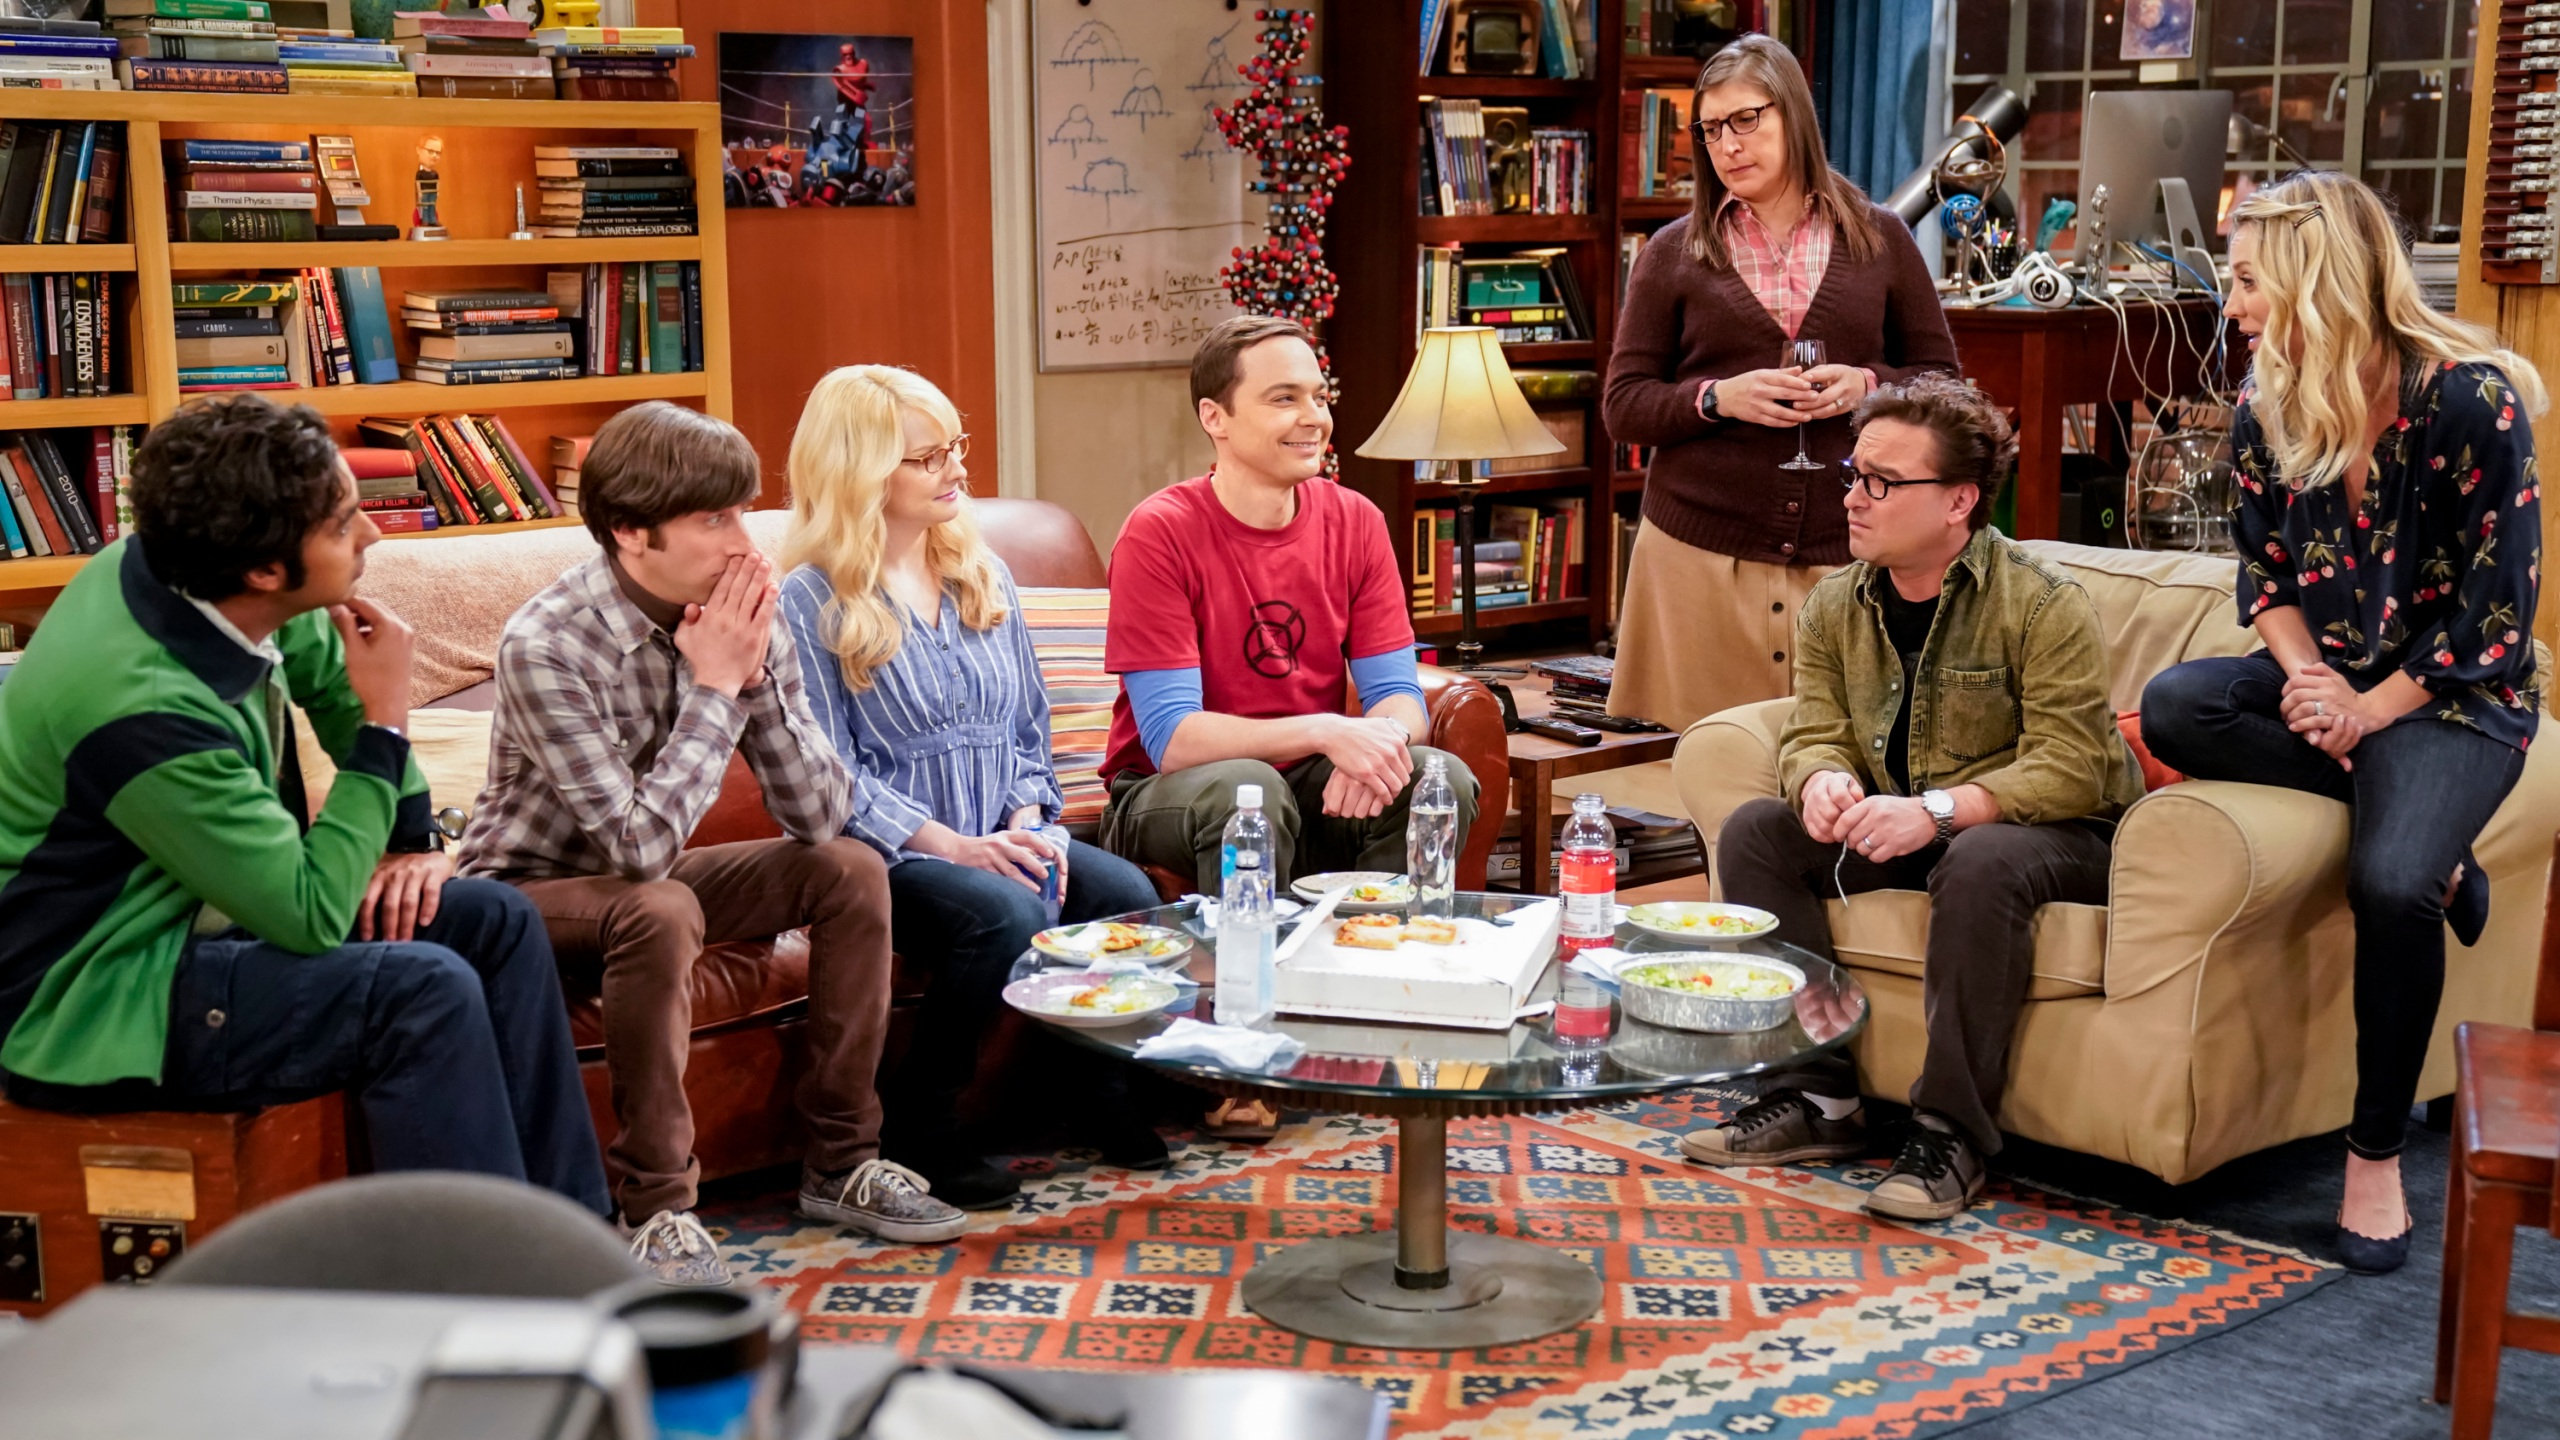 TV_Big_Bang_Theory_85659-159532.jpg91479732